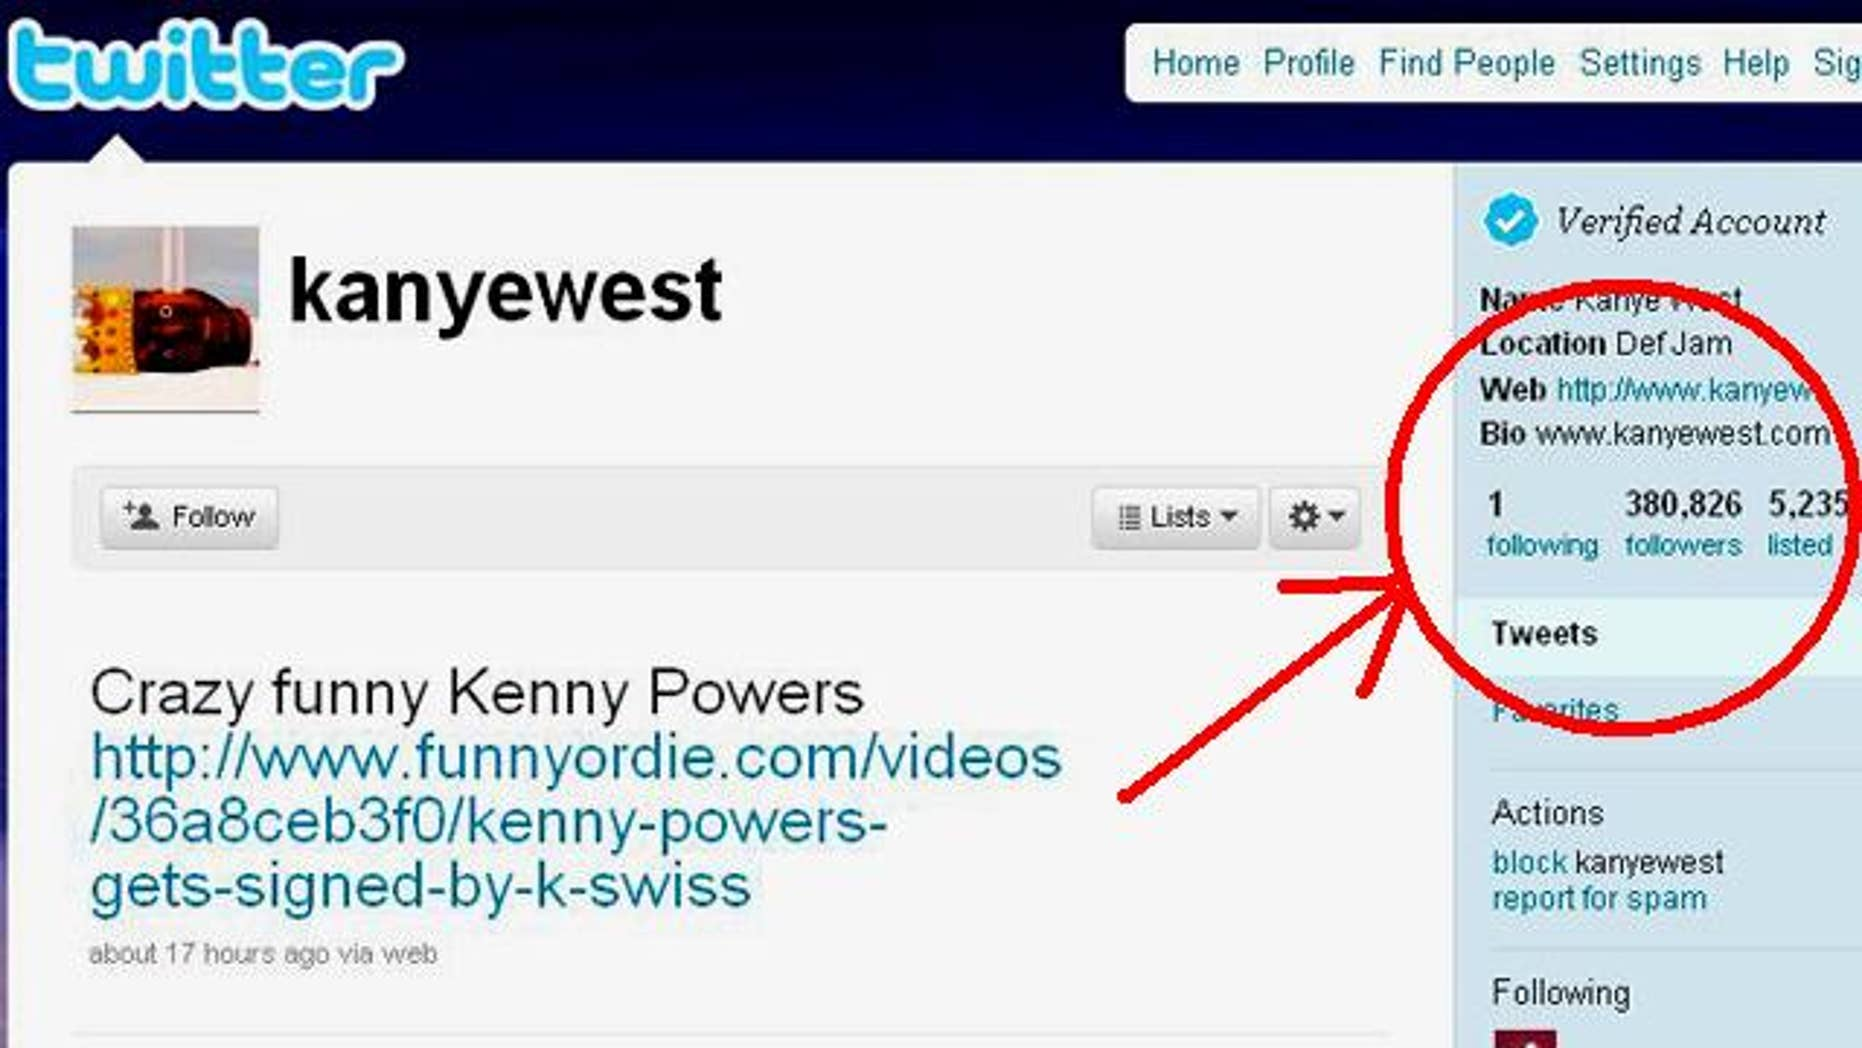 Rap star Kanye West recently made a big change in his online life: He's finallly found someone worth following on the micro-blogging site Twitter.